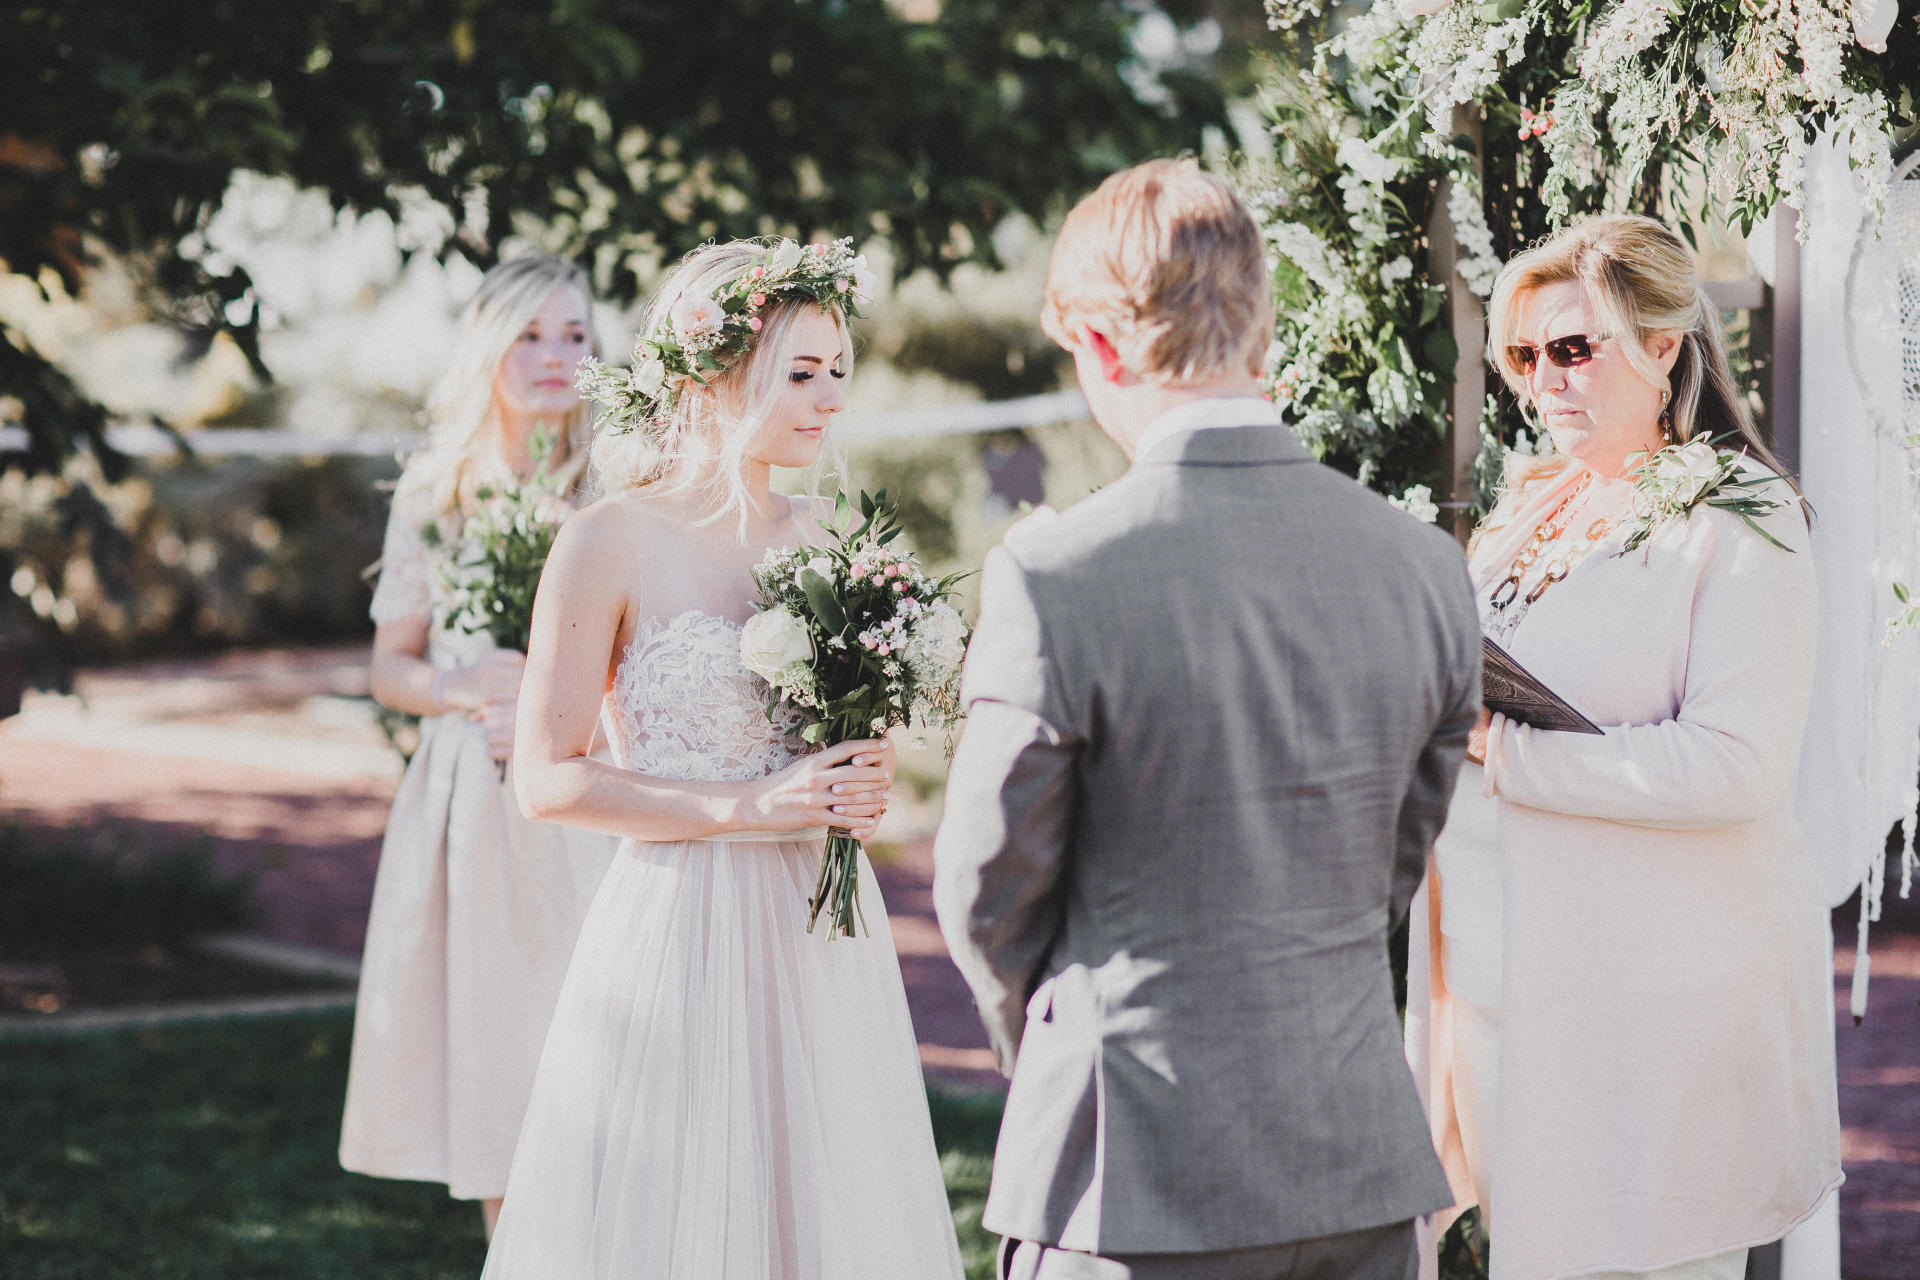 Aspyn+Parker-weddingday_tyfrenchphoto-5386